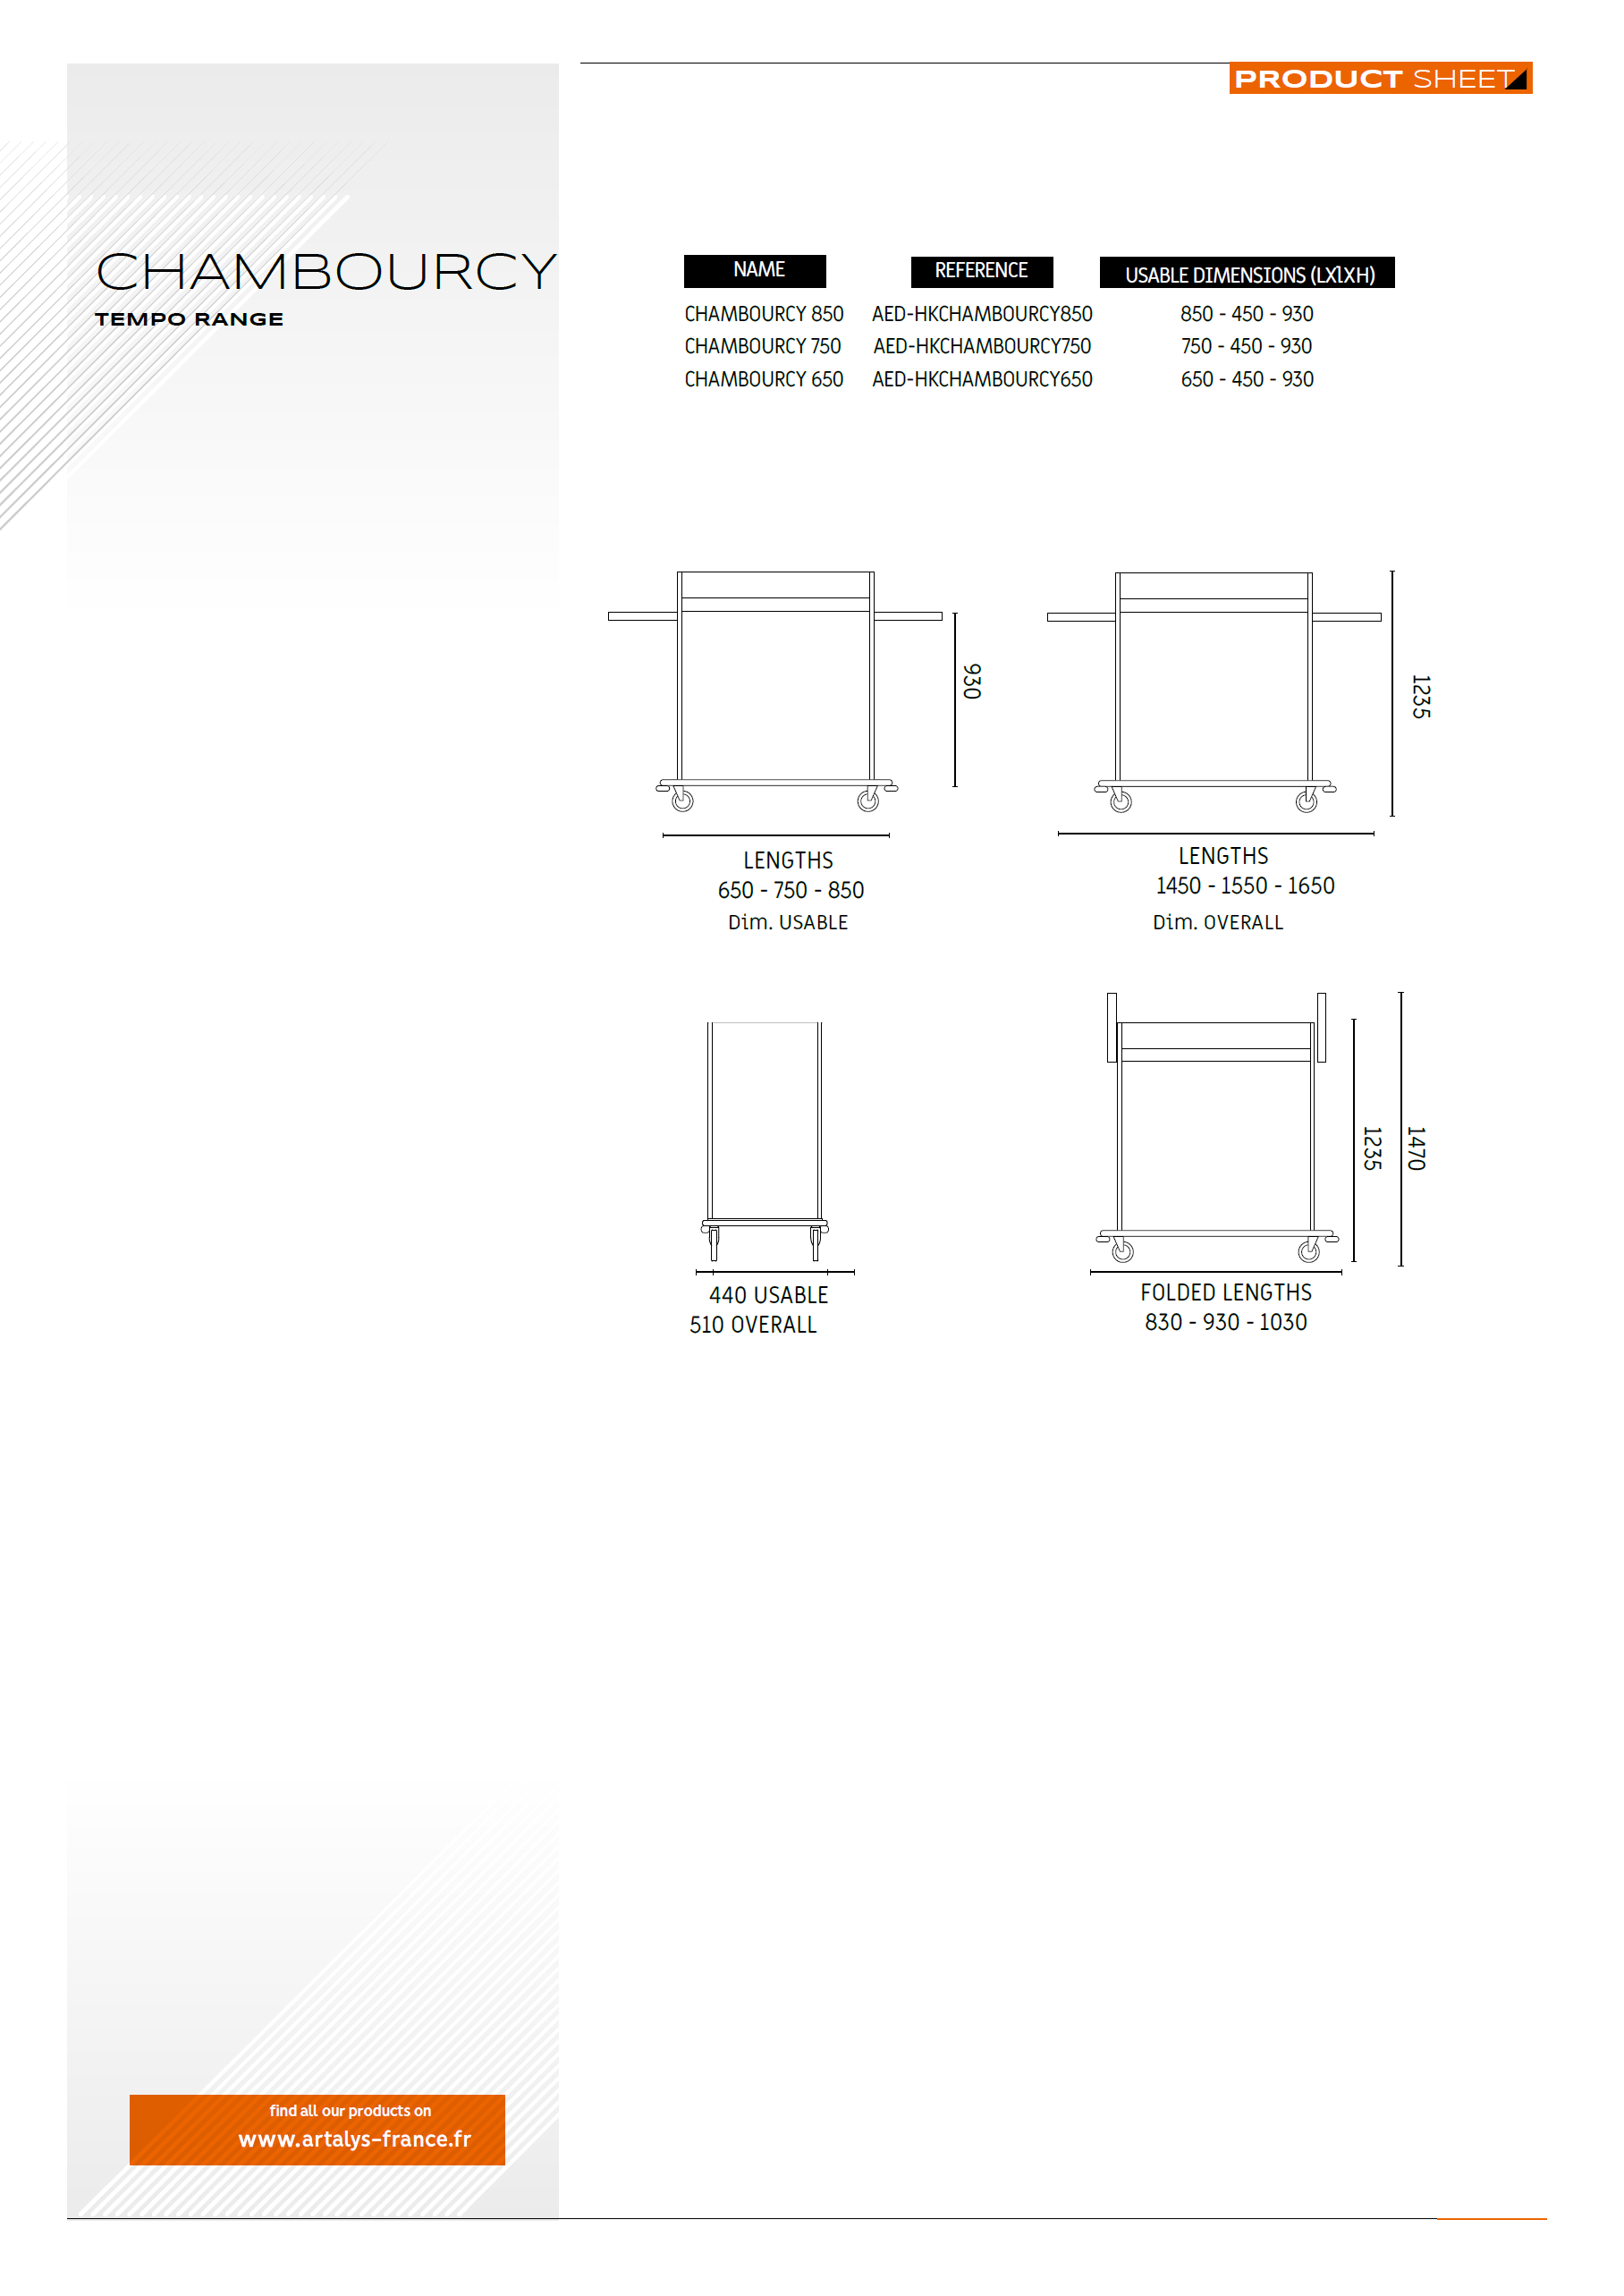 Product sheet of the hotel trolley chambourcy